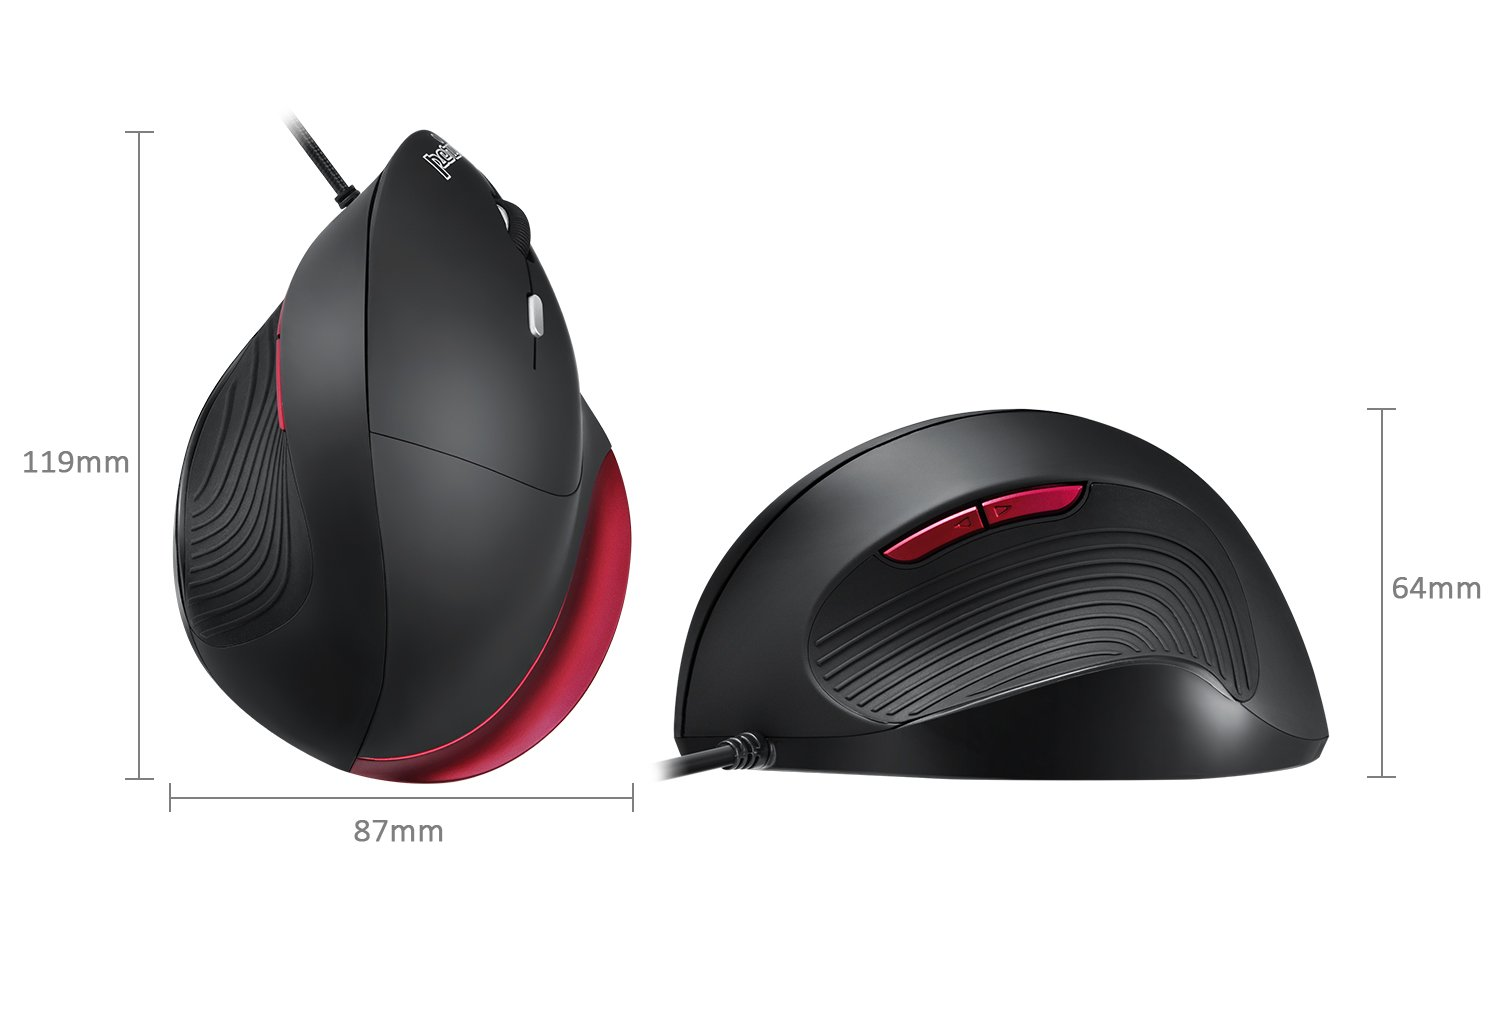 Perixx PM-718R-11562 Wireless 2.4 GHz Ergonomic Vertical Mouse Black Right Handed Design 5 Programmable Buttons